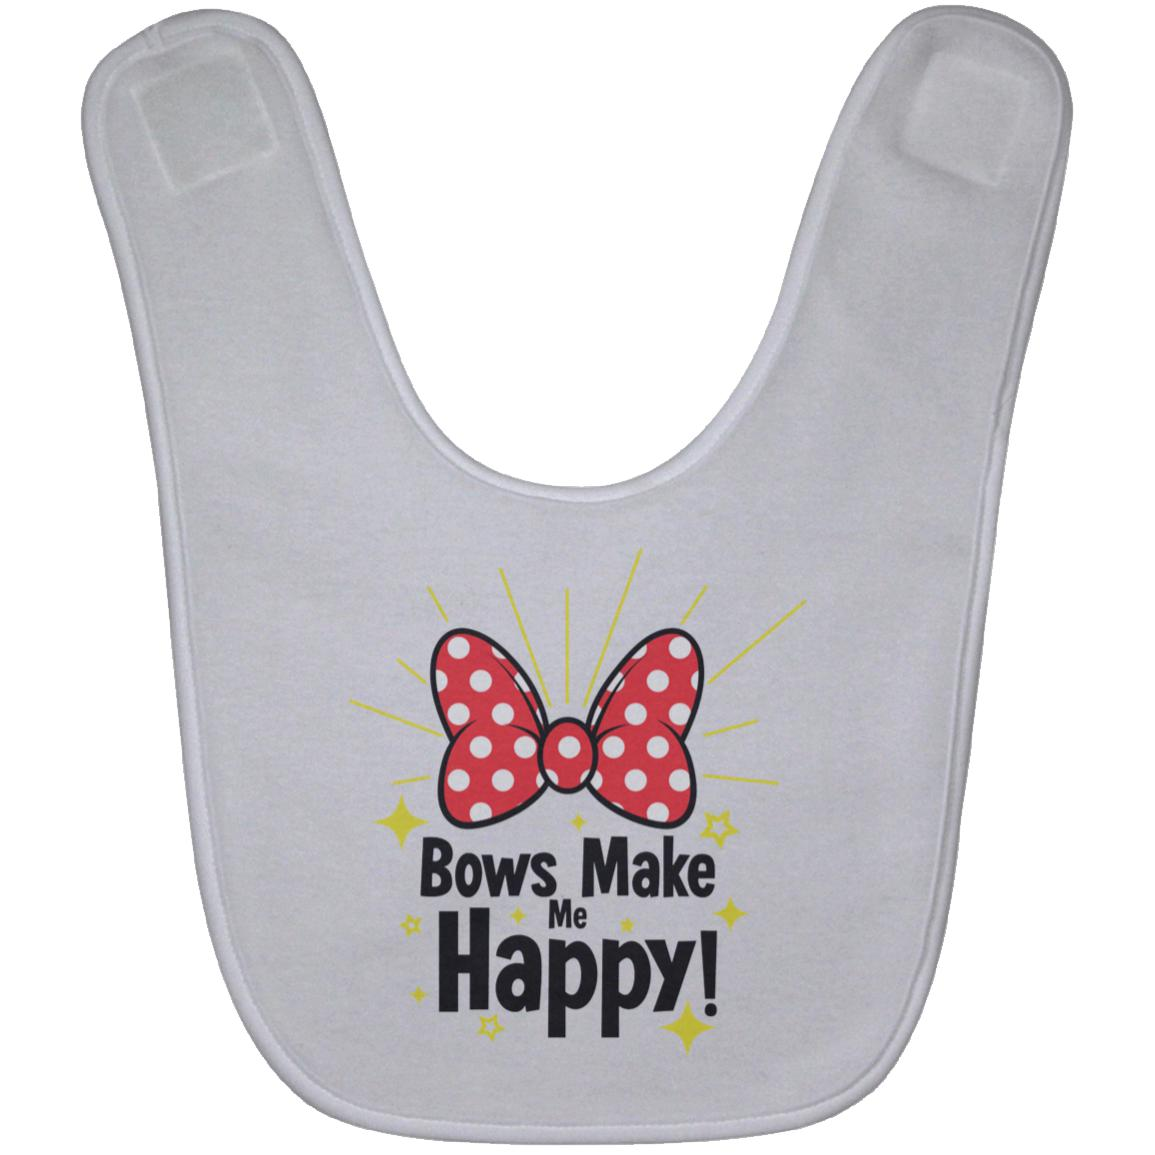 Bows Make Me Happy - Baby Bib